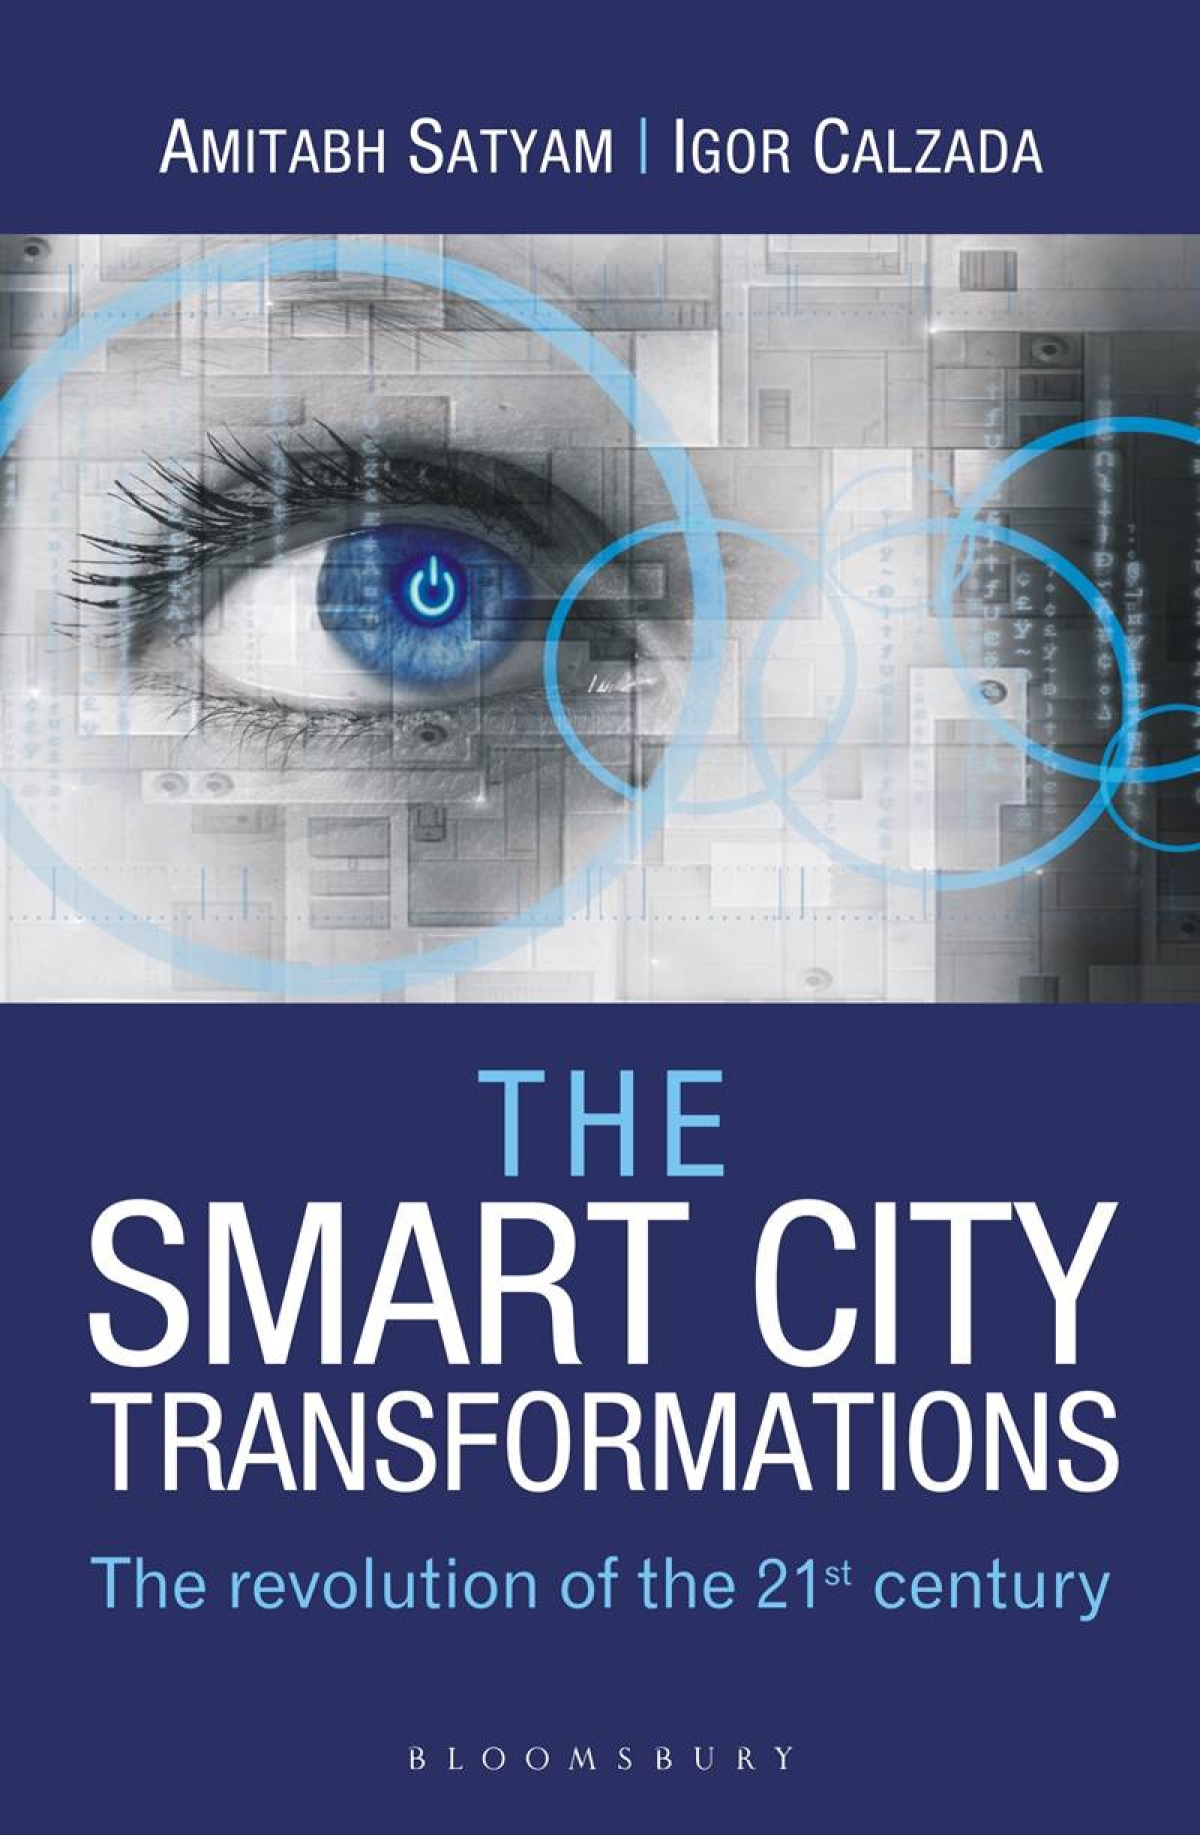 The Smart City Transformations: The Revolution of The 21st Century- Review